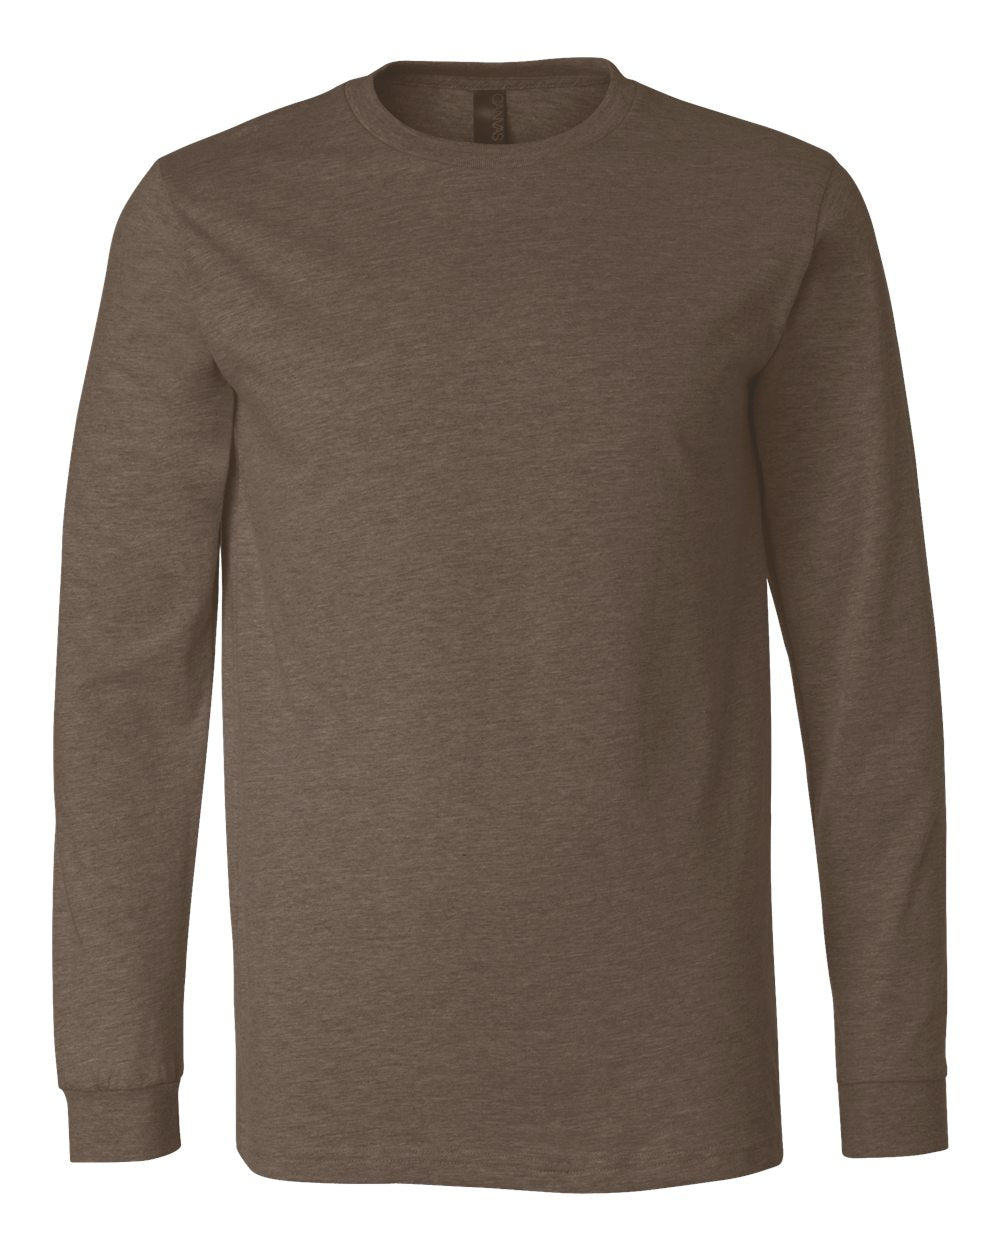 Bella + Canvas Long Sleeve Jersey Tee - $$